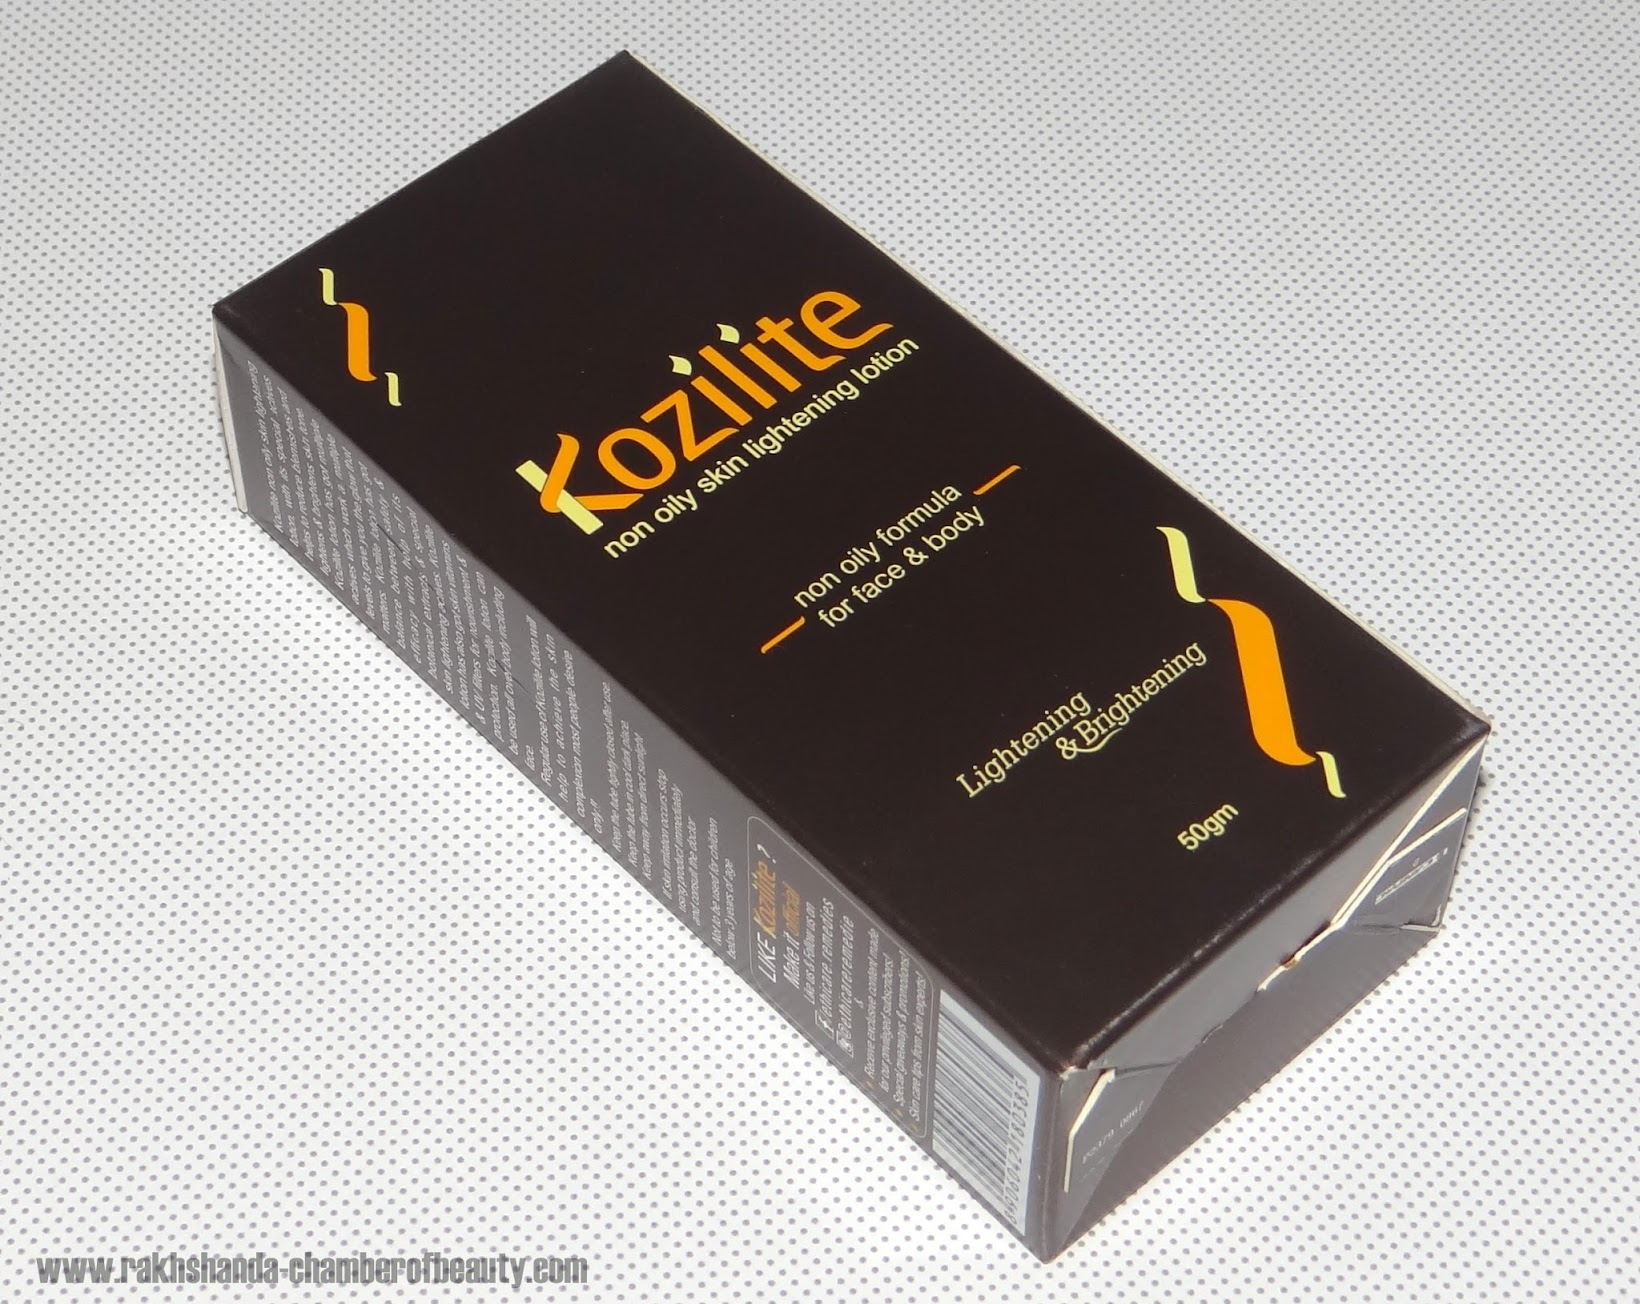 Kozilite Non Oily Skin Lightening Lotion- review, whitening lotion, Kozilite Non Oily Lightening Lotion price, skin lightening lotion in India, review and swatches,  Ethicare Remedies, Kozilite Lightening lotion buy online, chamber of beauty, Indian beauty blogger, Top Beauty Blog in India